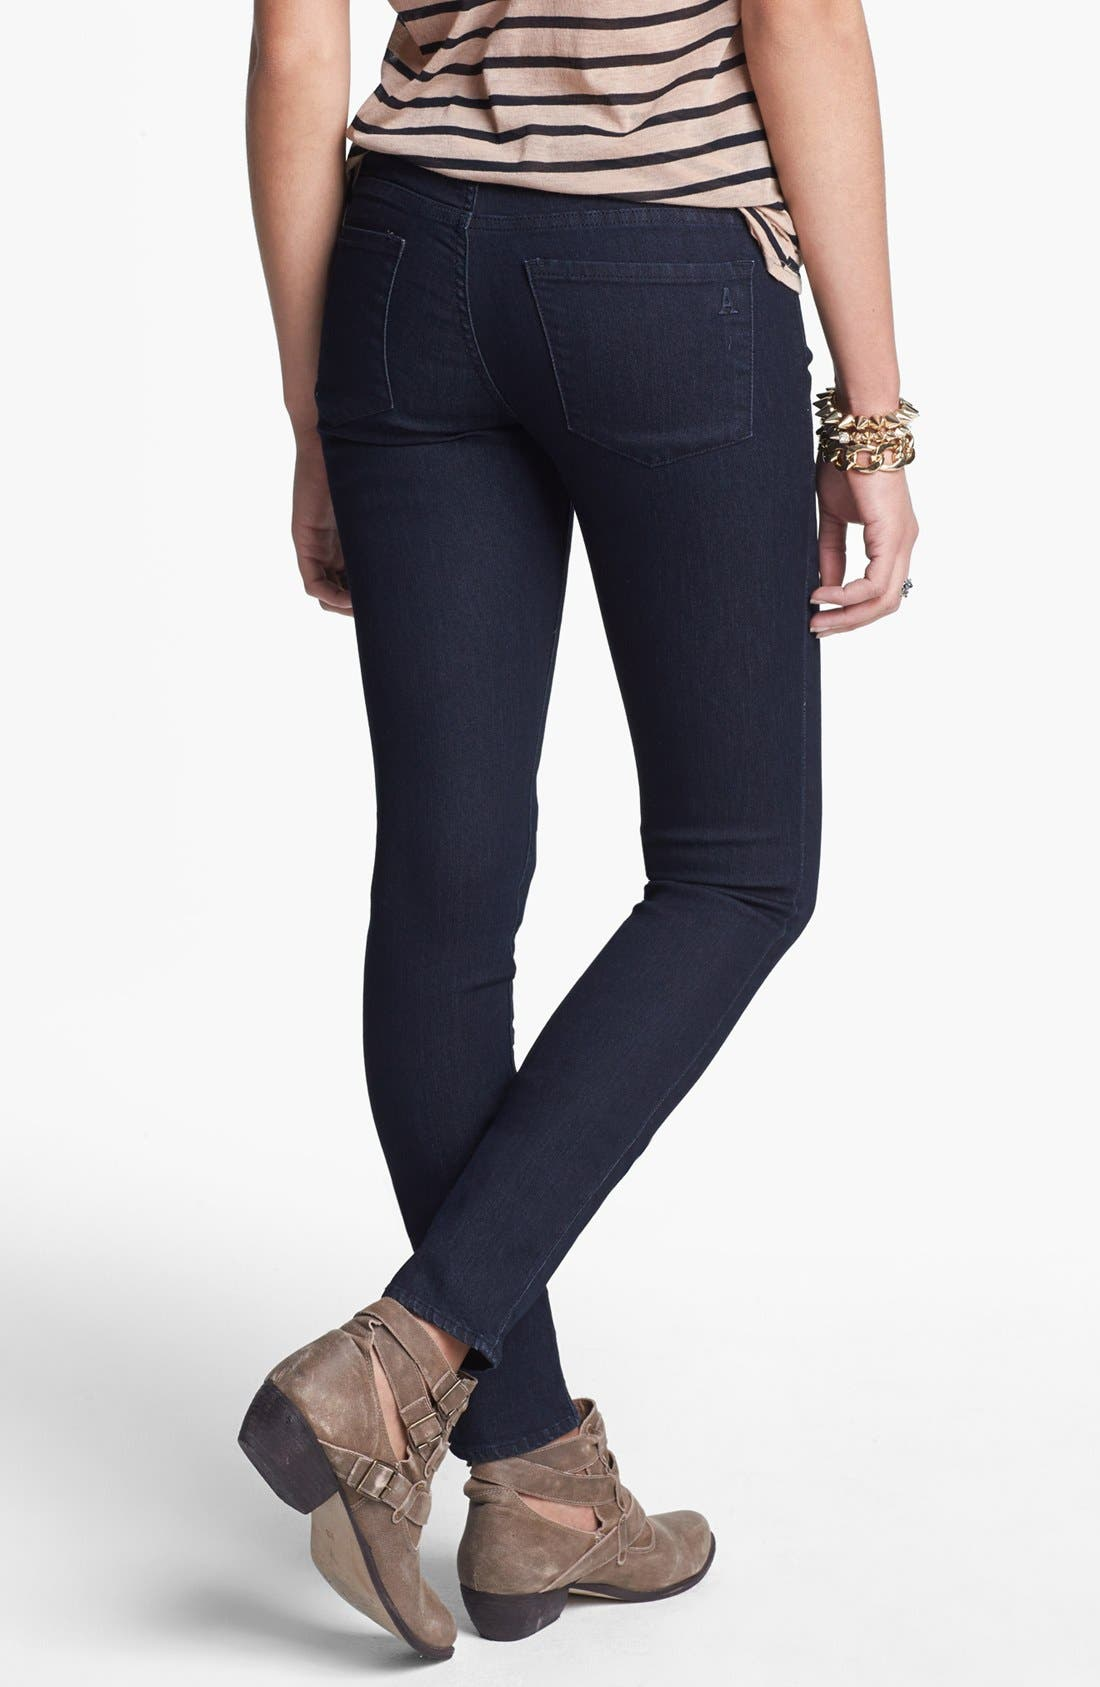 Alternate Image 2  - Articles of Society 'Lana' Skinny Jeans (Dark) (Juniors)